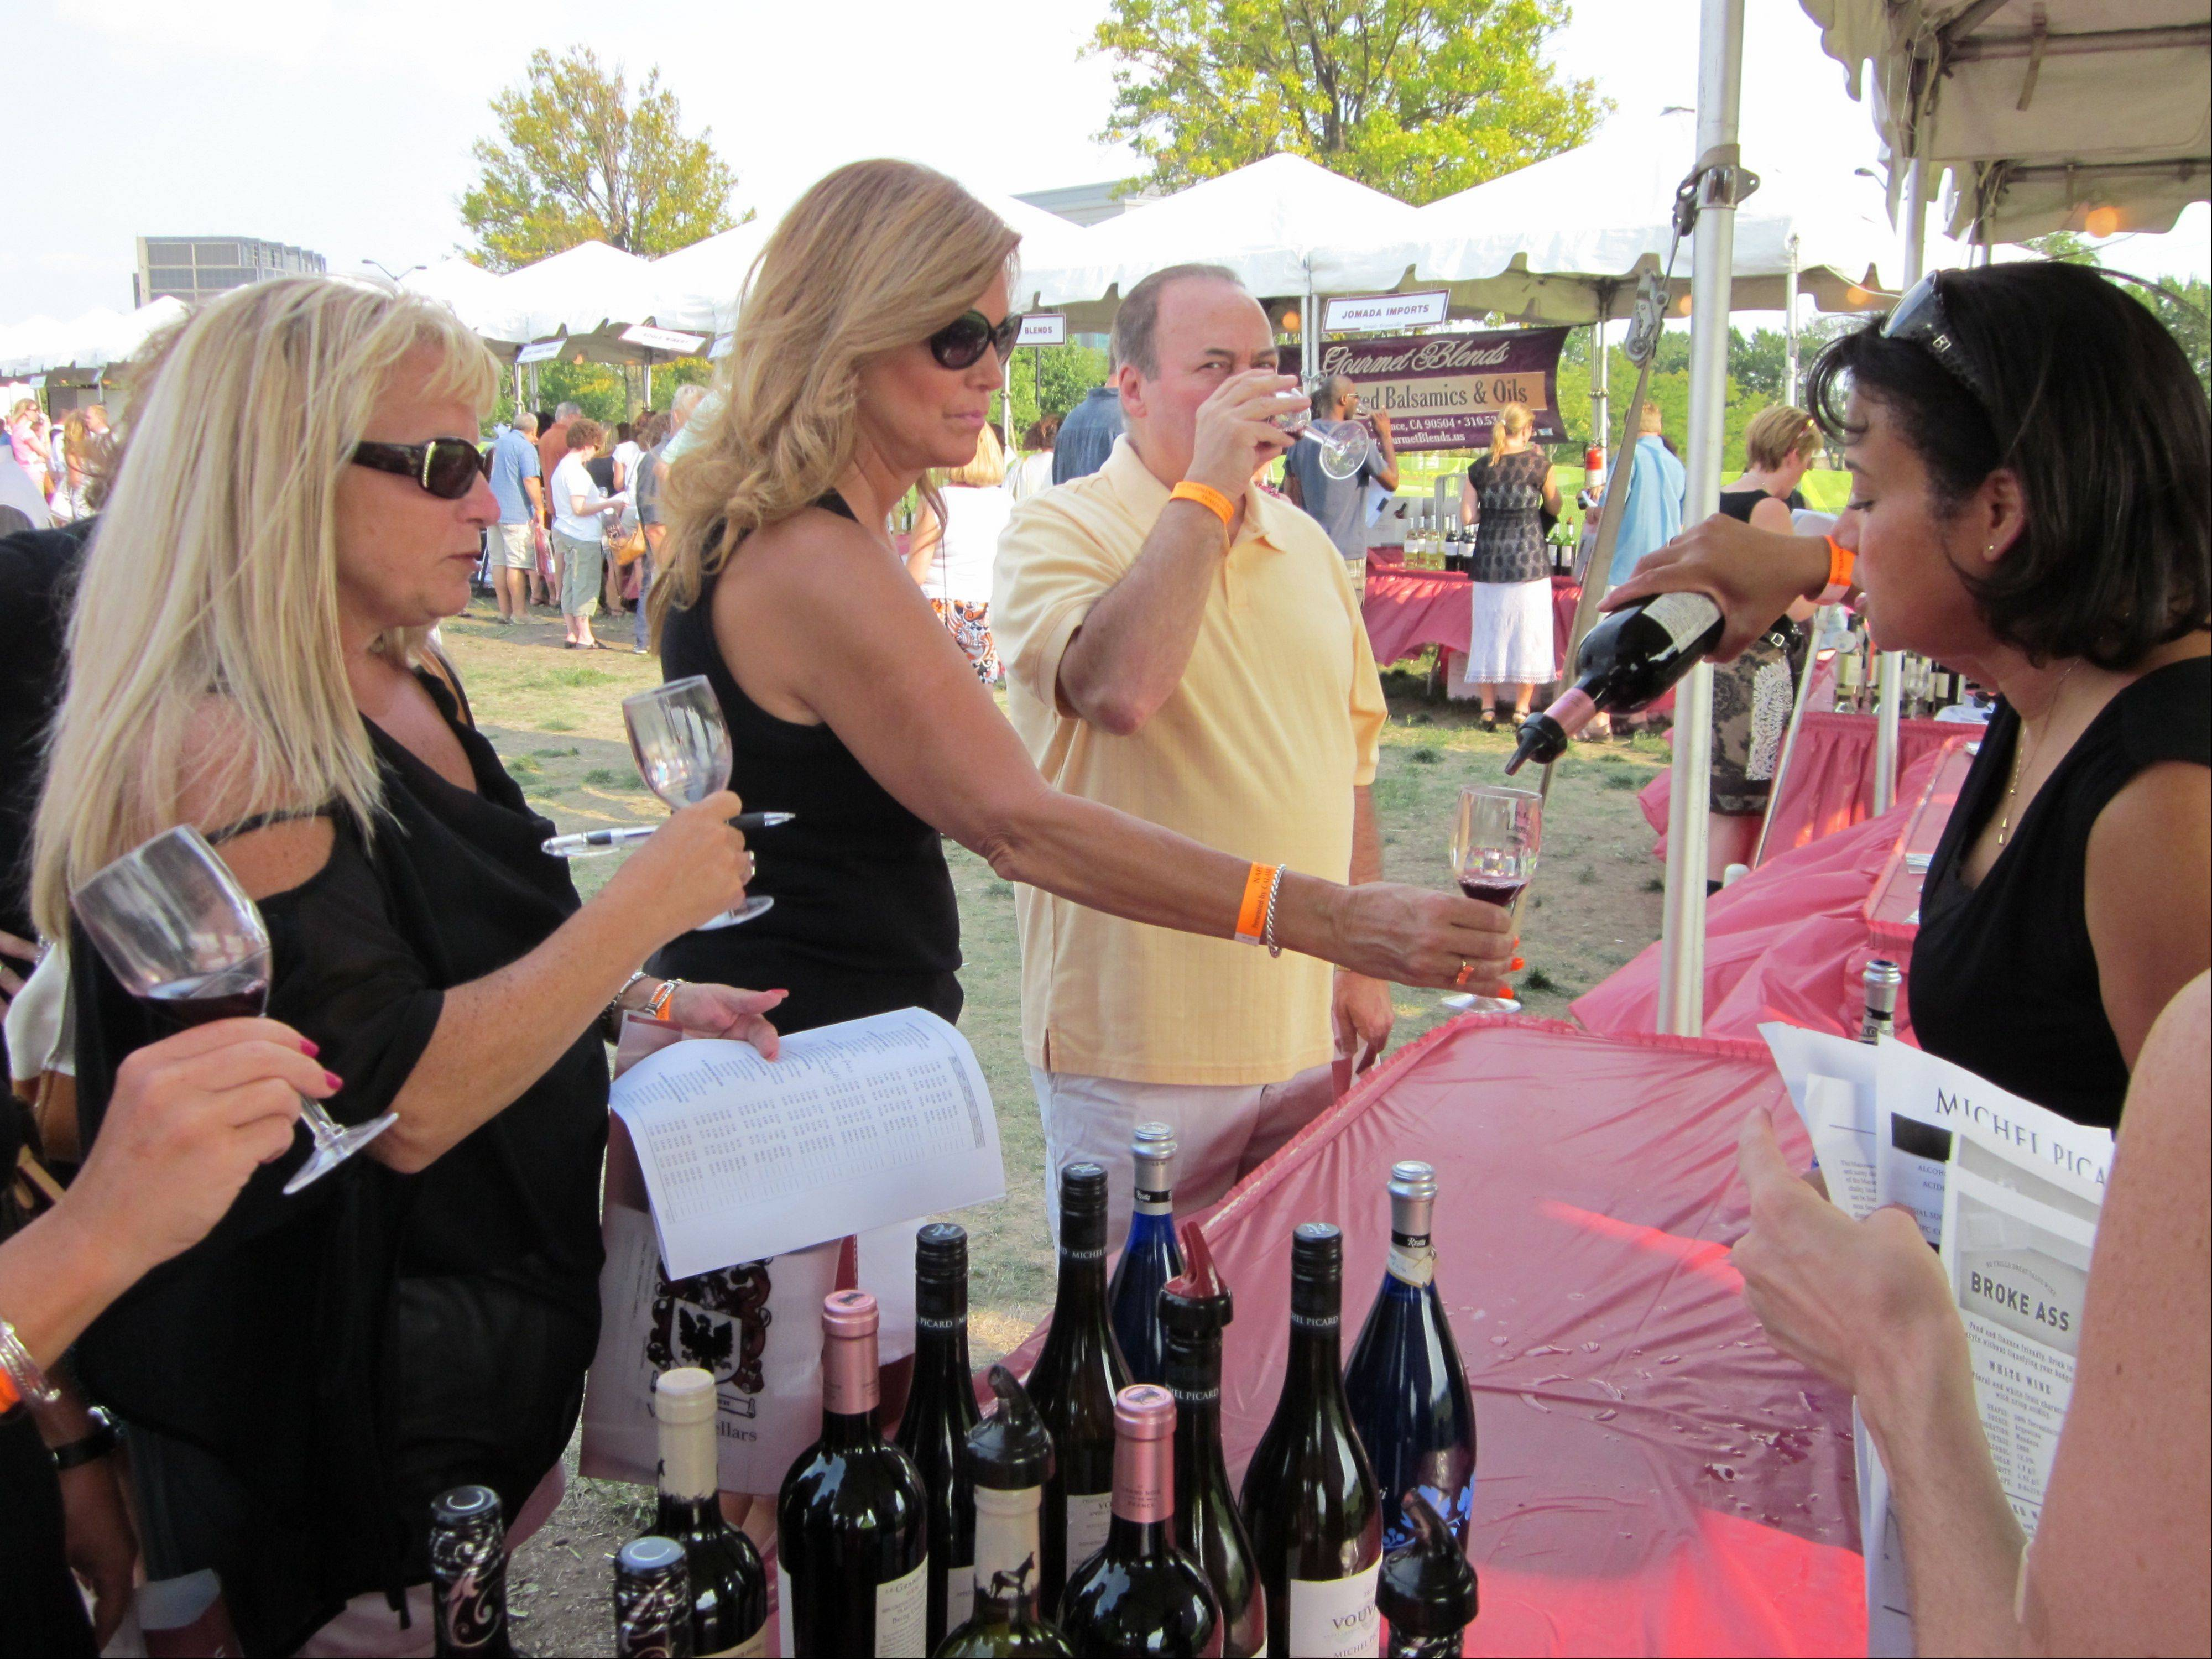 Wine lovers can sample a selection of 300 wines this weekend at the Naperville Wine Festival, which also features live music and a beer garden.